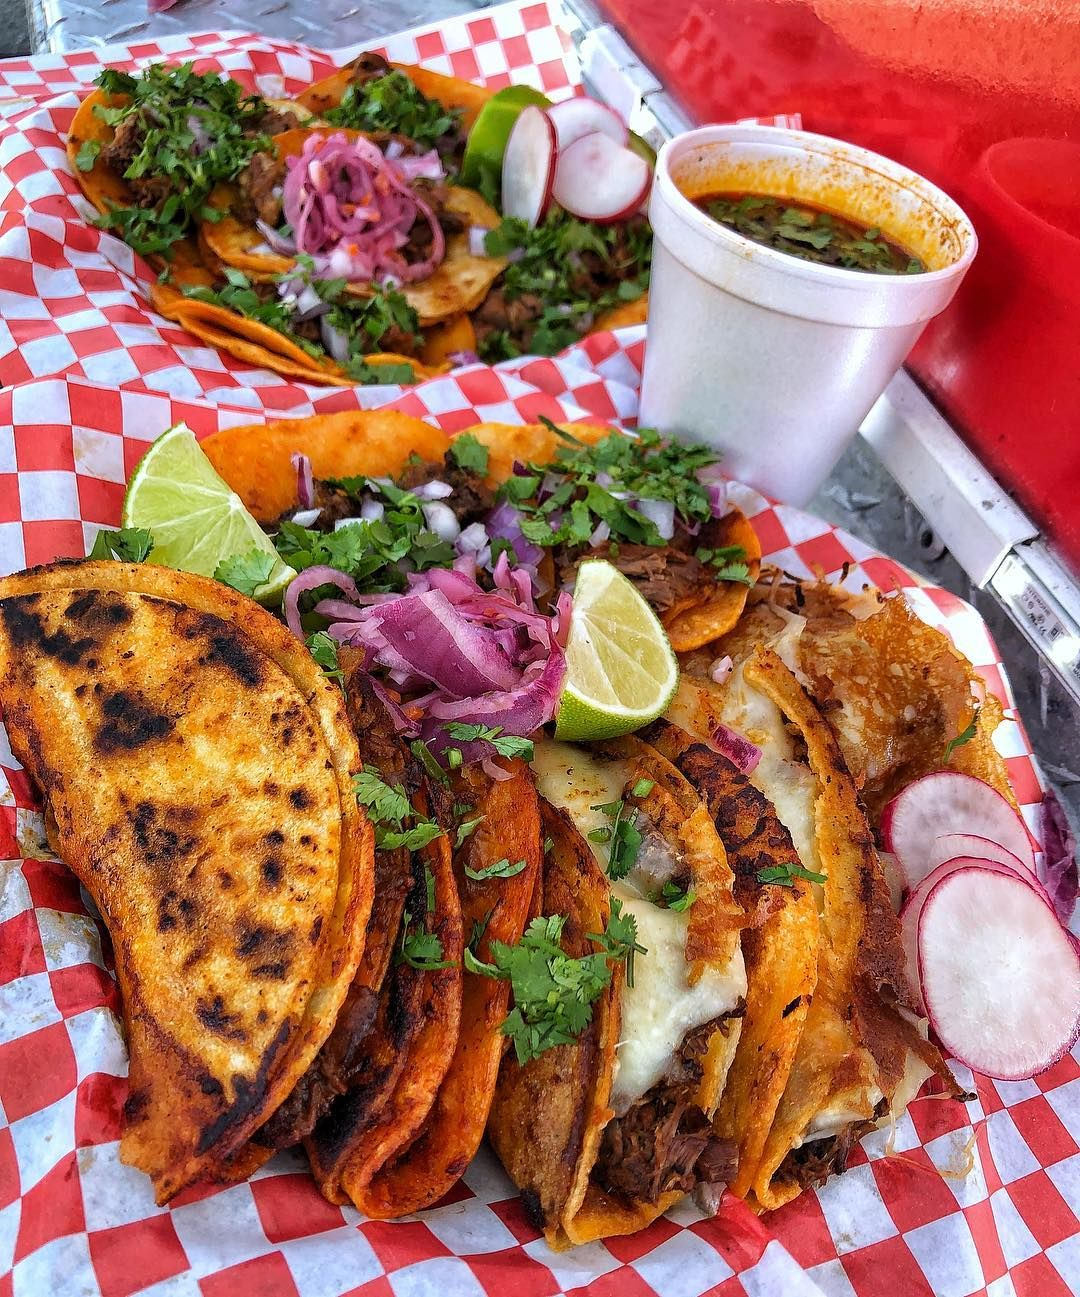 Birrieriasanmarcos On Instagram Merry Christmas From Birrieria San Marcos Now That You Mexican Food Recipes Authentic Mexican Food Recipes Pretty Food